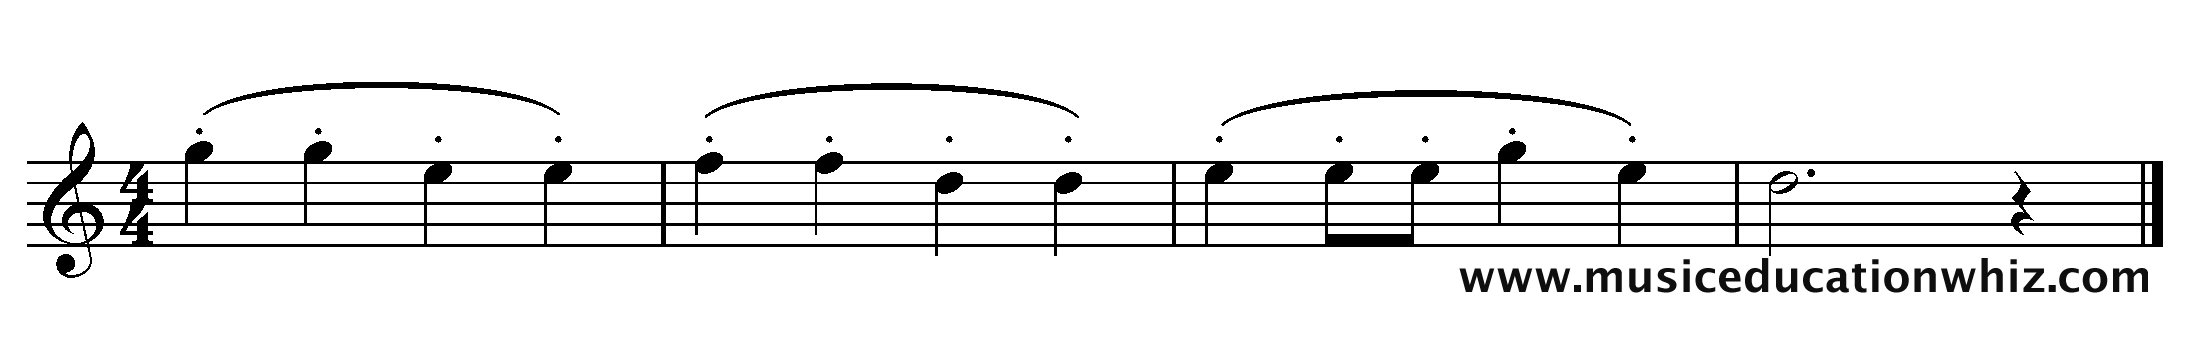 The music for 'Mary Mary Quite Contrary' with mezzo staccato markings (dots).